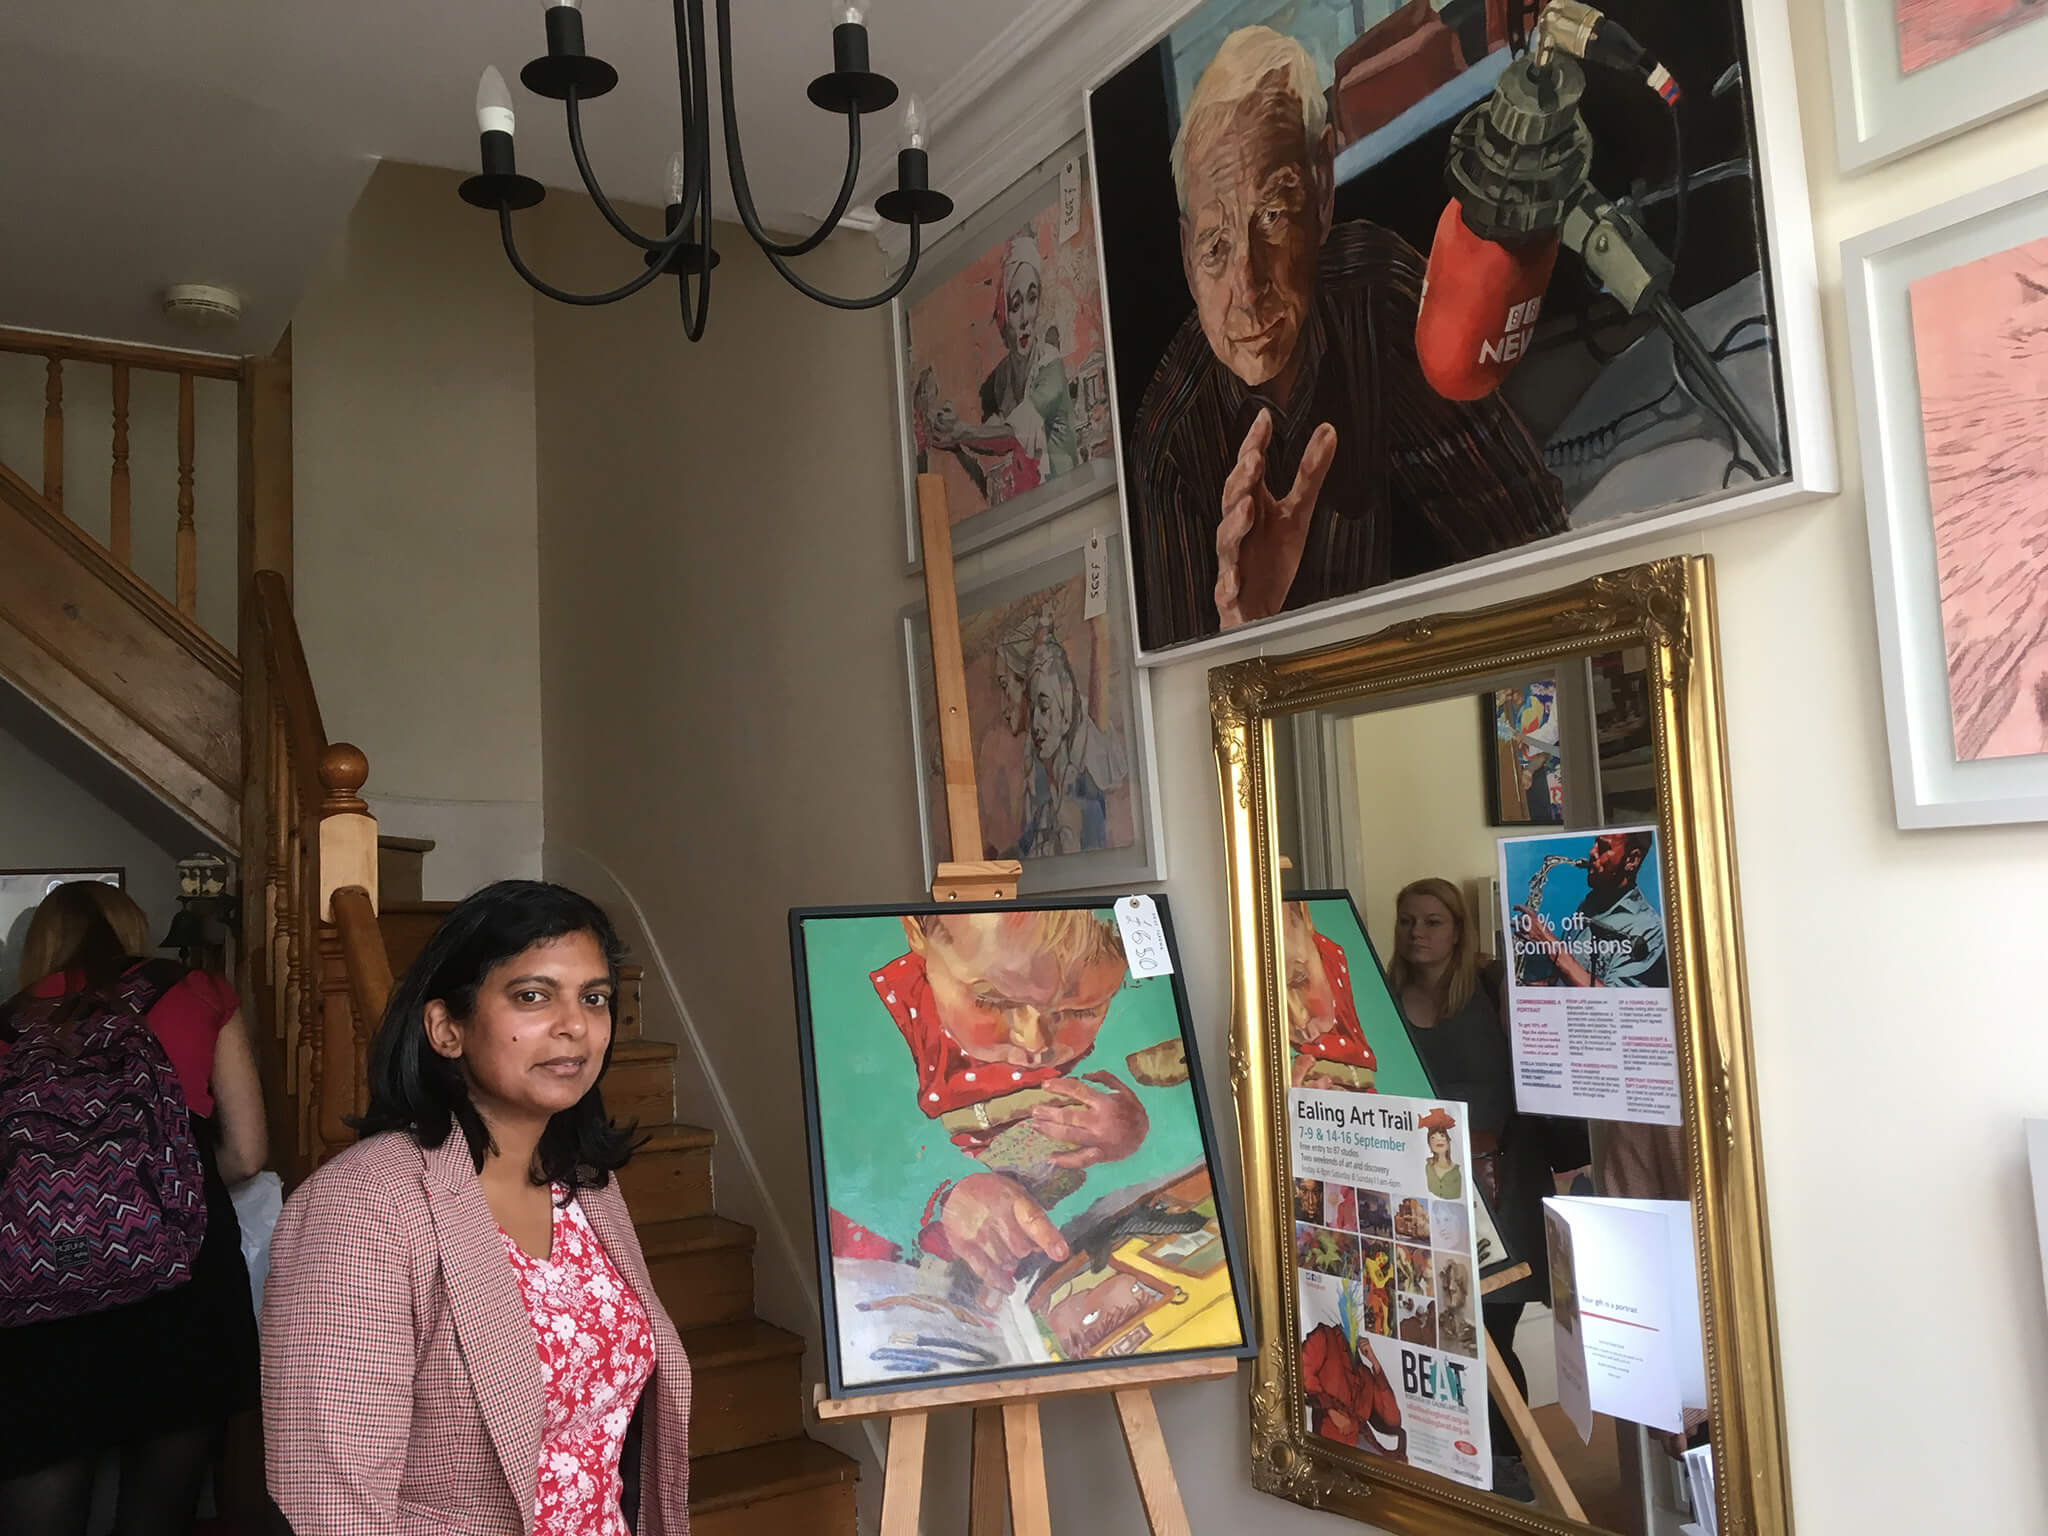 Ealing MP Rupa Huq visits Stella Tooth's open studio for BEAT Borough of Ealing Art Trail 2018.